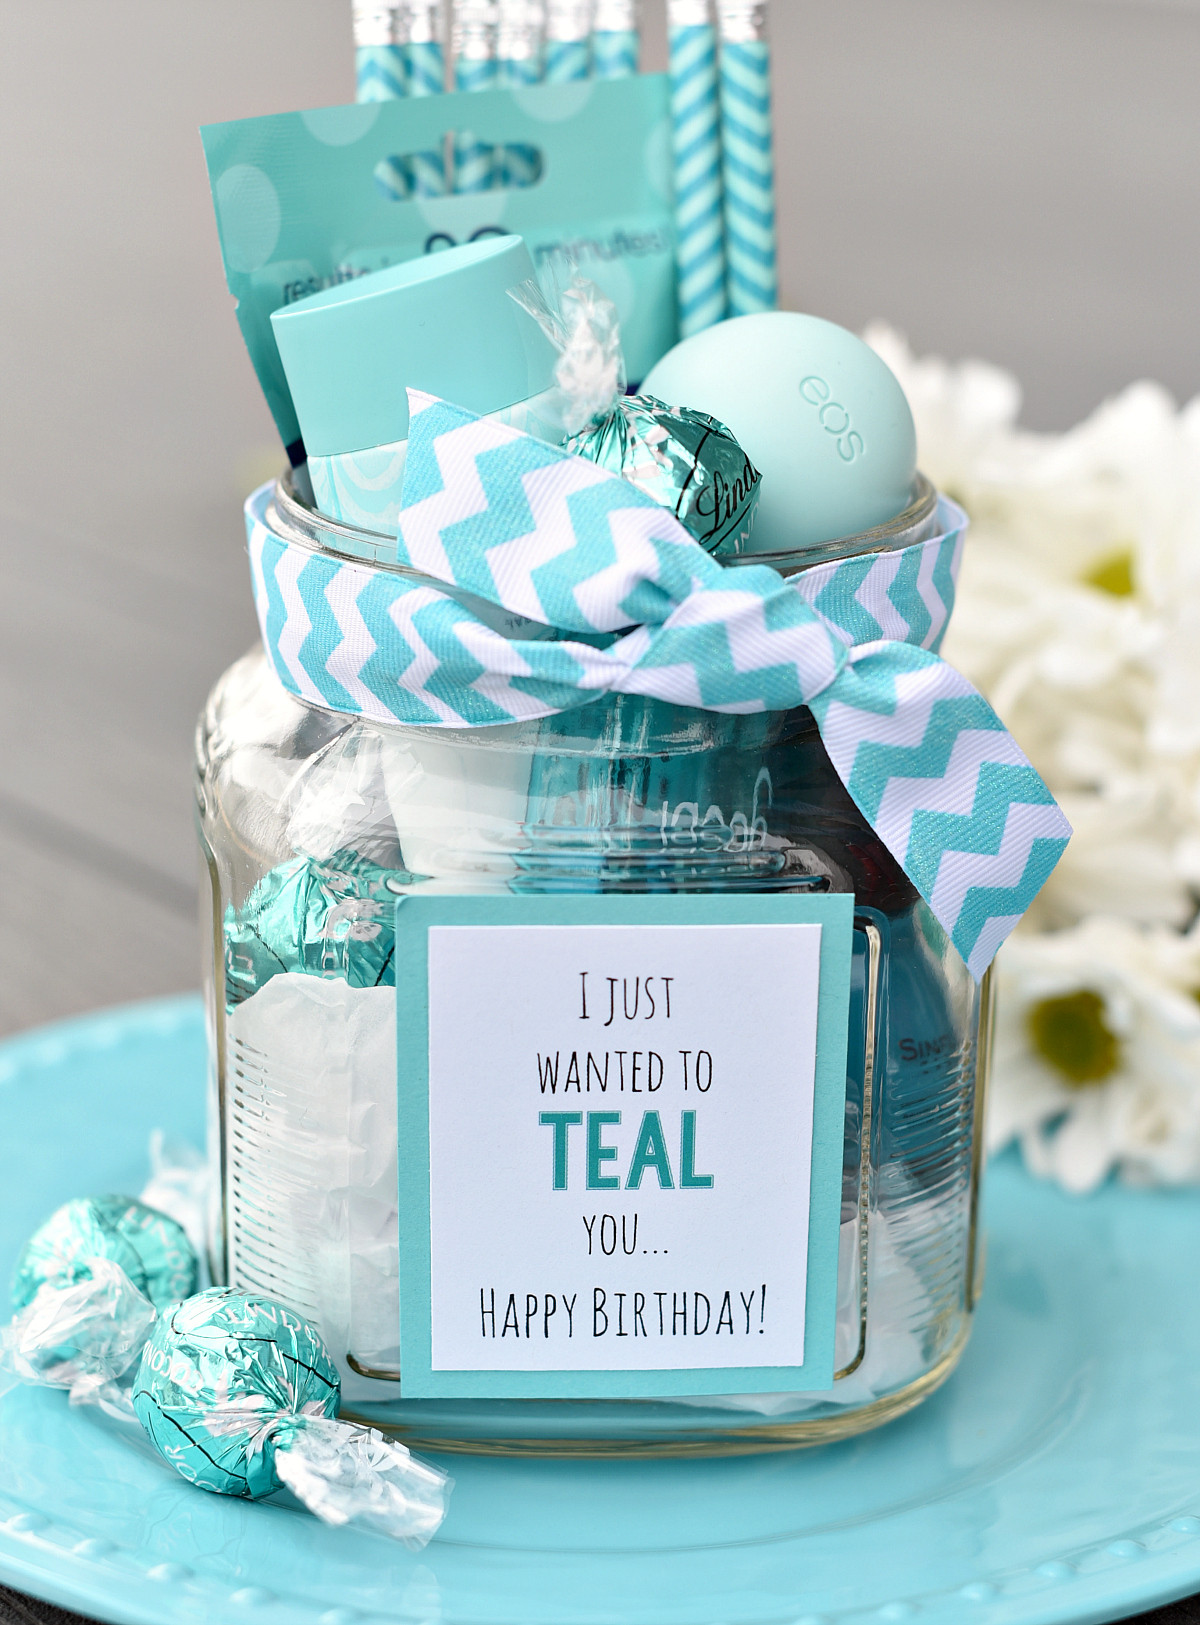 Top Birthday Gifts For Her  Teal Birthday Gift Idea for Friends – Fun Squared